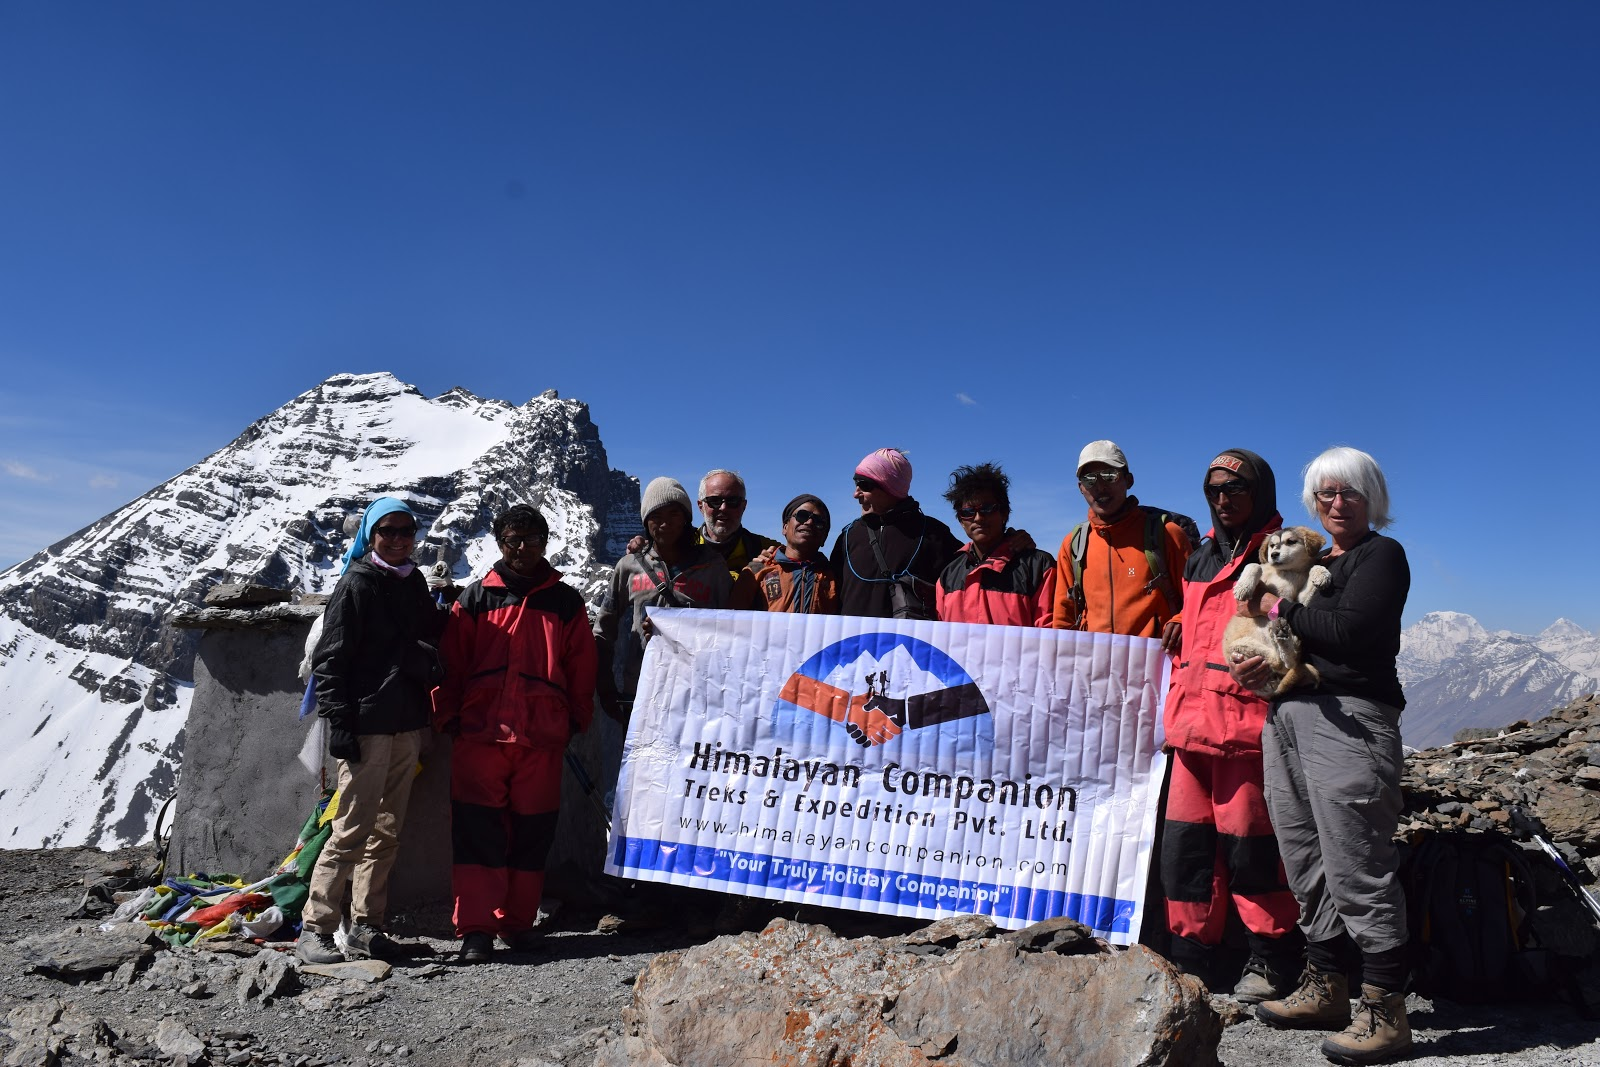 Discover Dolpo with Himalayan Companion Treks and Expedition